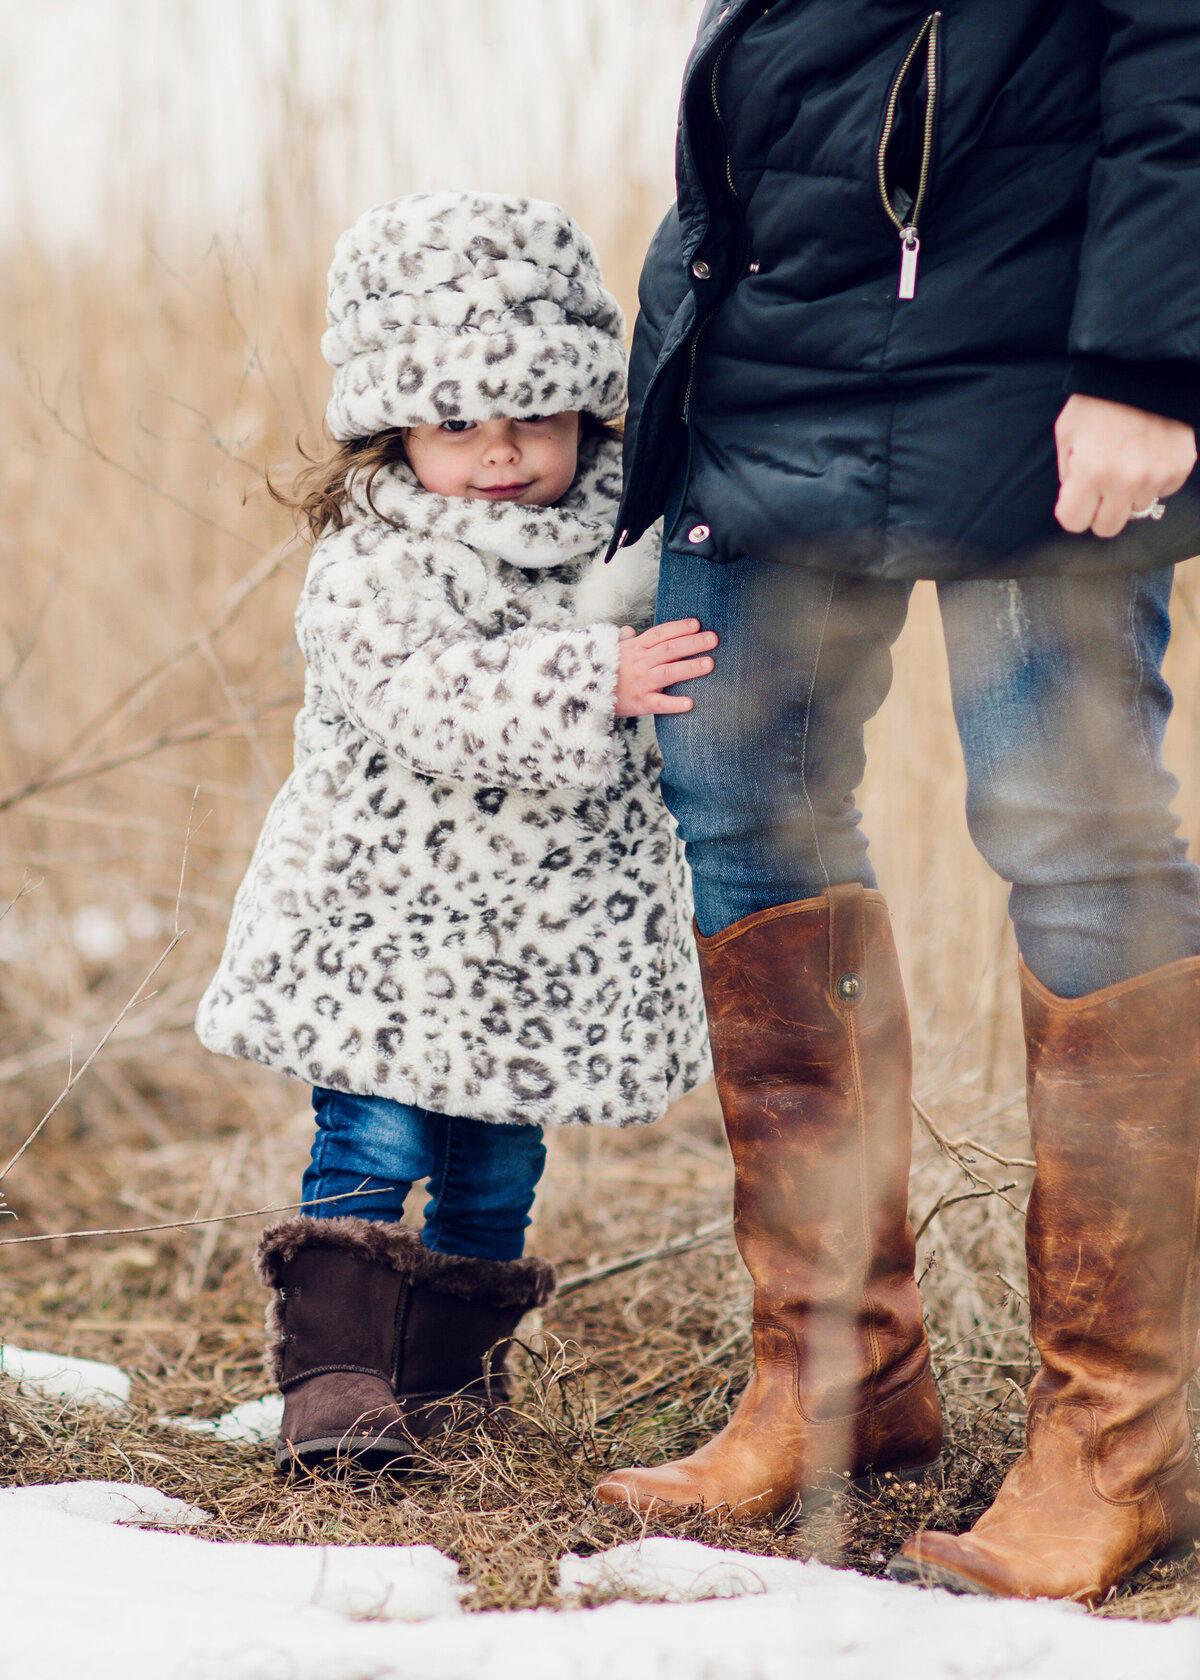 Des-Moines-Iowa-Family-Photographer-Theresa-Schumacher-Winter-Mom-Daughter-Boots